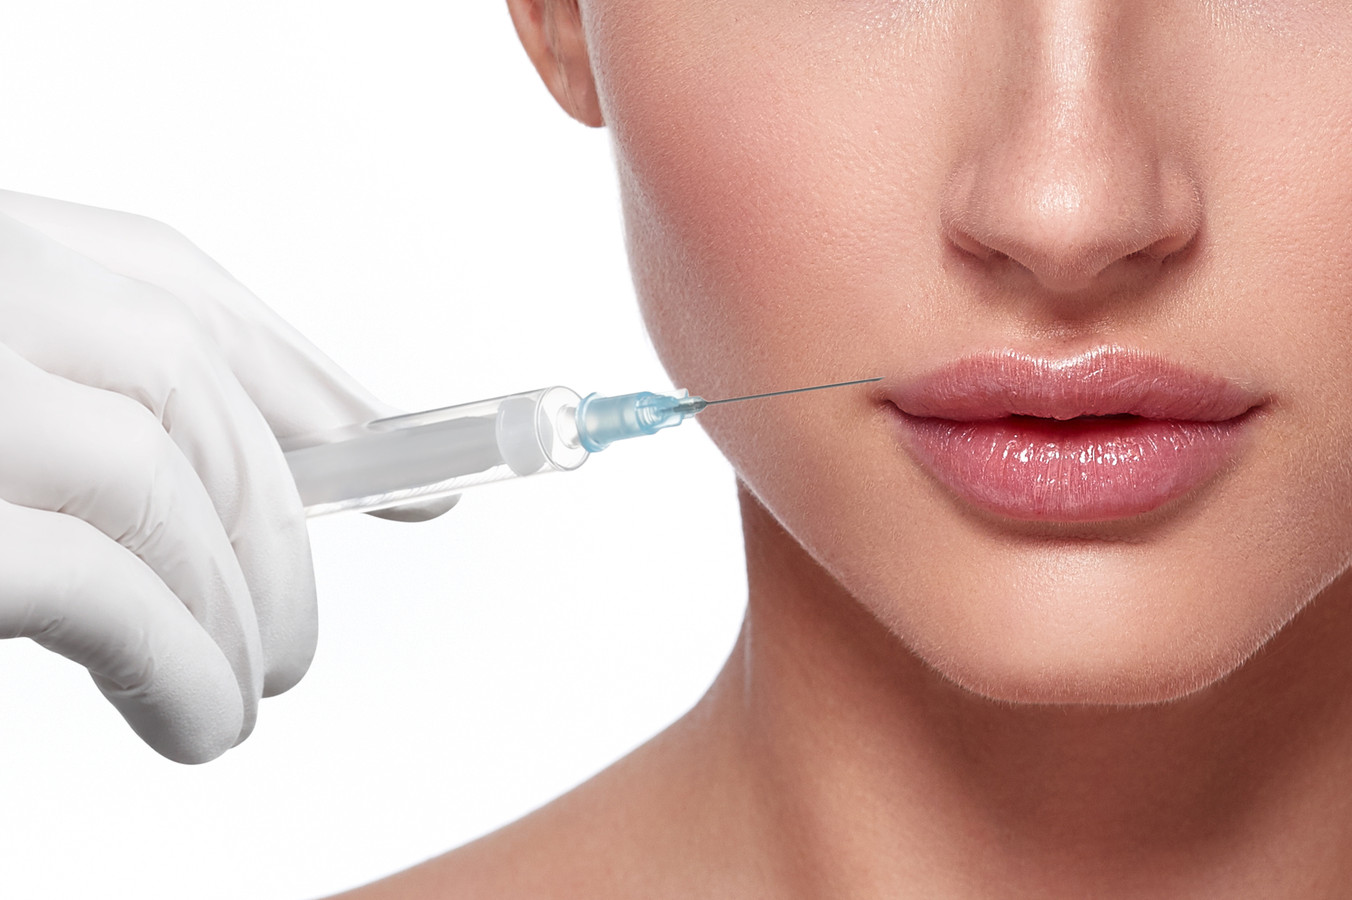 Dermal Fillers injected into the skin to reduce facial lines and restore volume and fullness in the face.